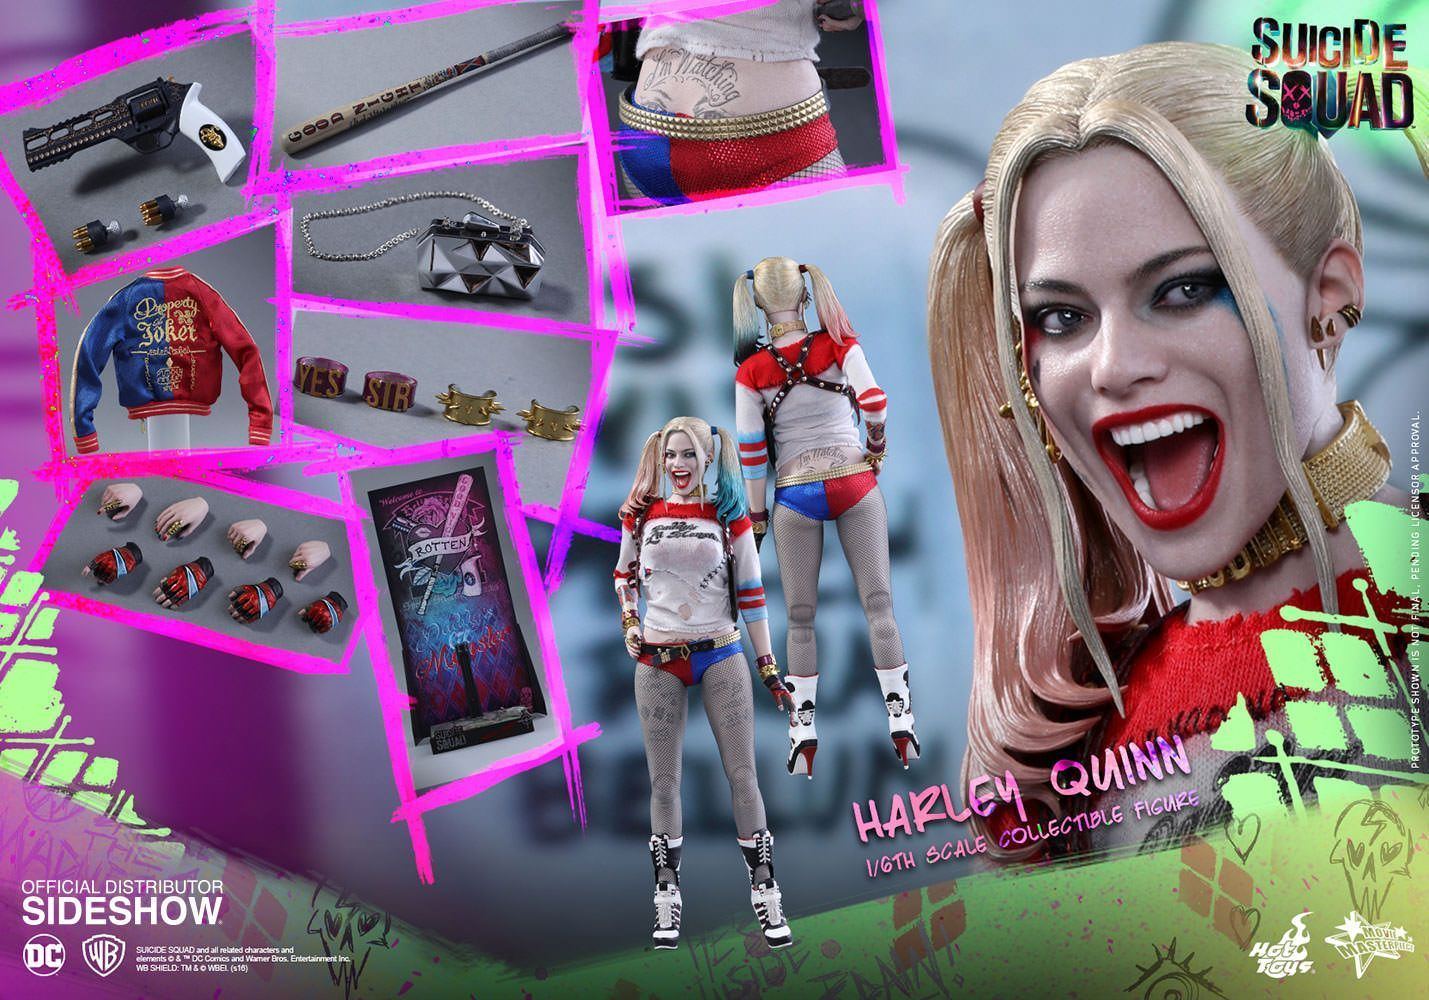 Hot Toys One Sixth Scale Suicide Squad Harley Quinn Figure